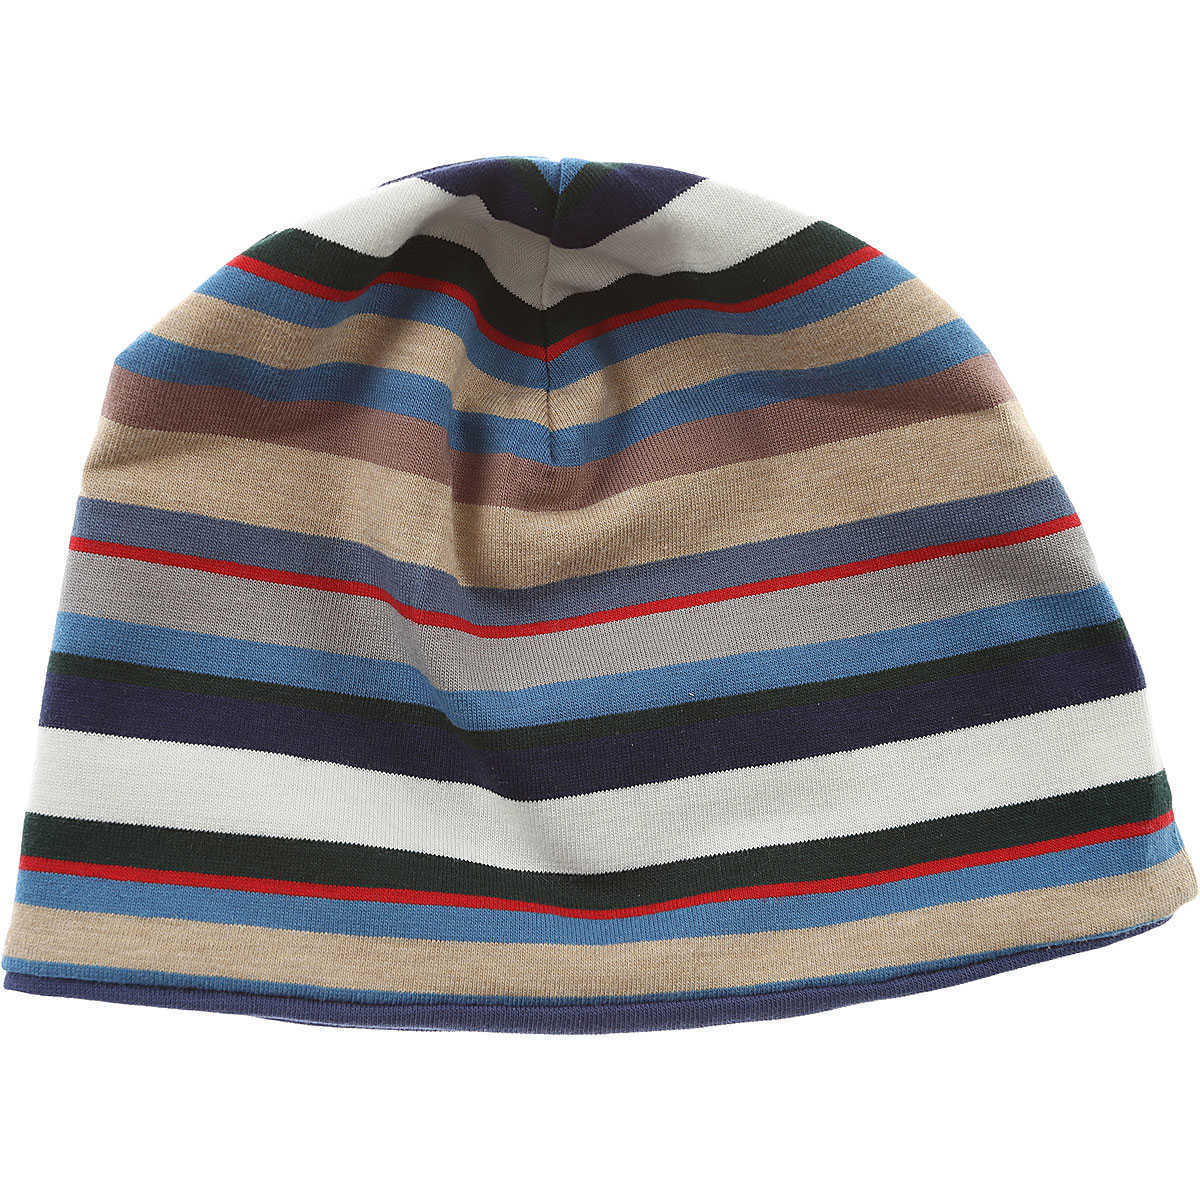 Gallo Baby Hats for Boys On Sale in Outlet Multicolor SE - GOOFASH